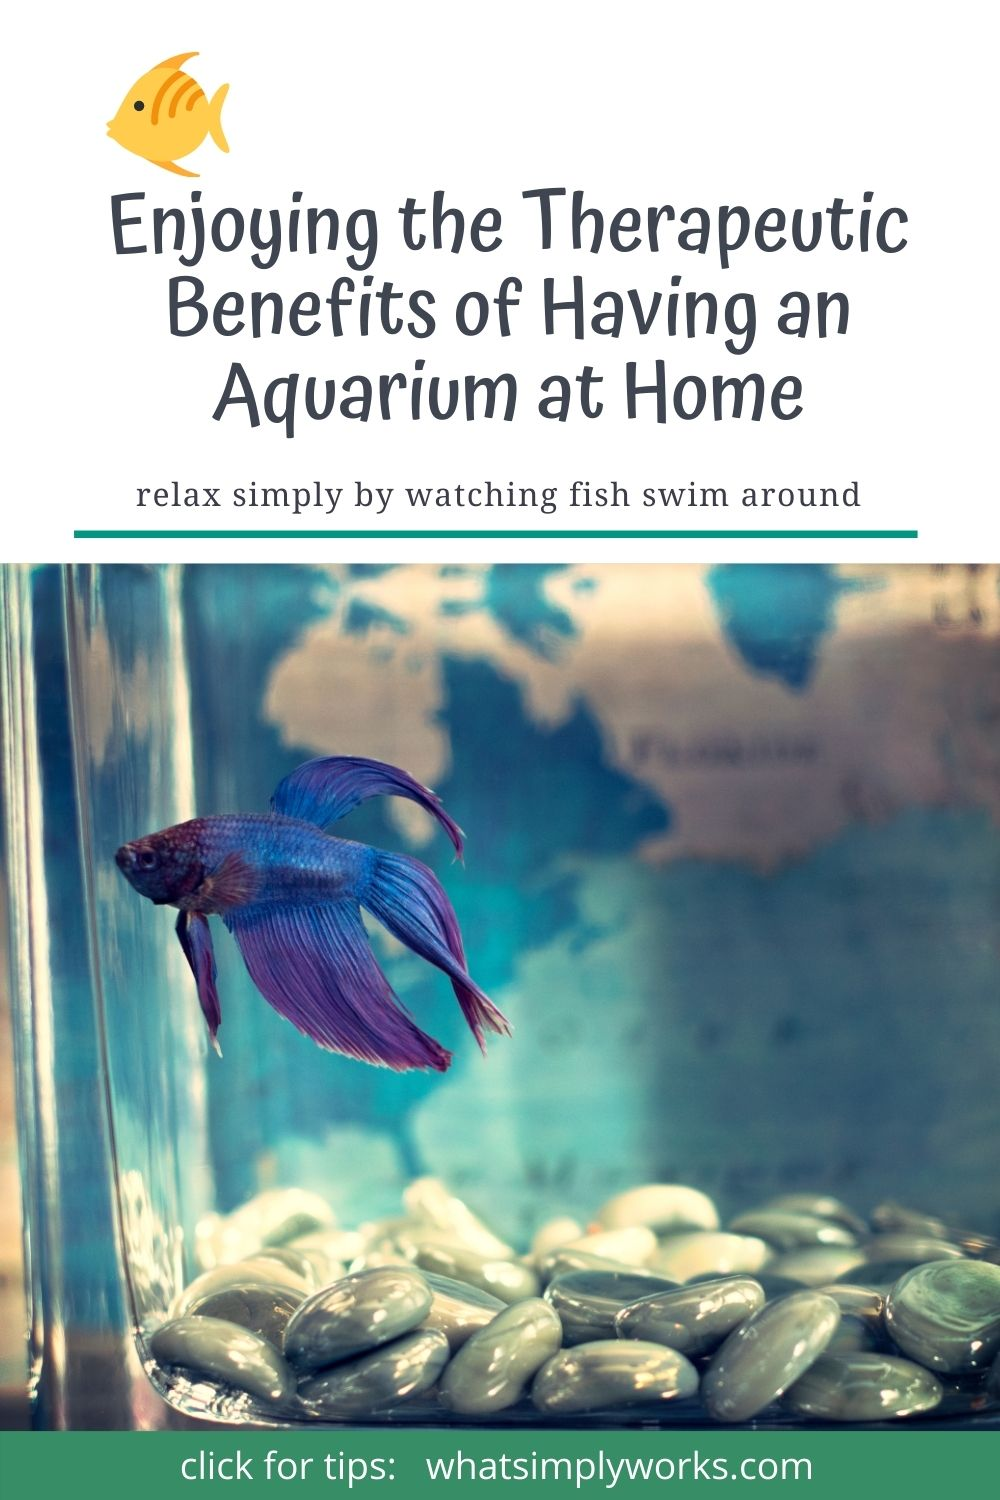 Enjoying the Therapeutic Benefits of Having an Aquarium at Home